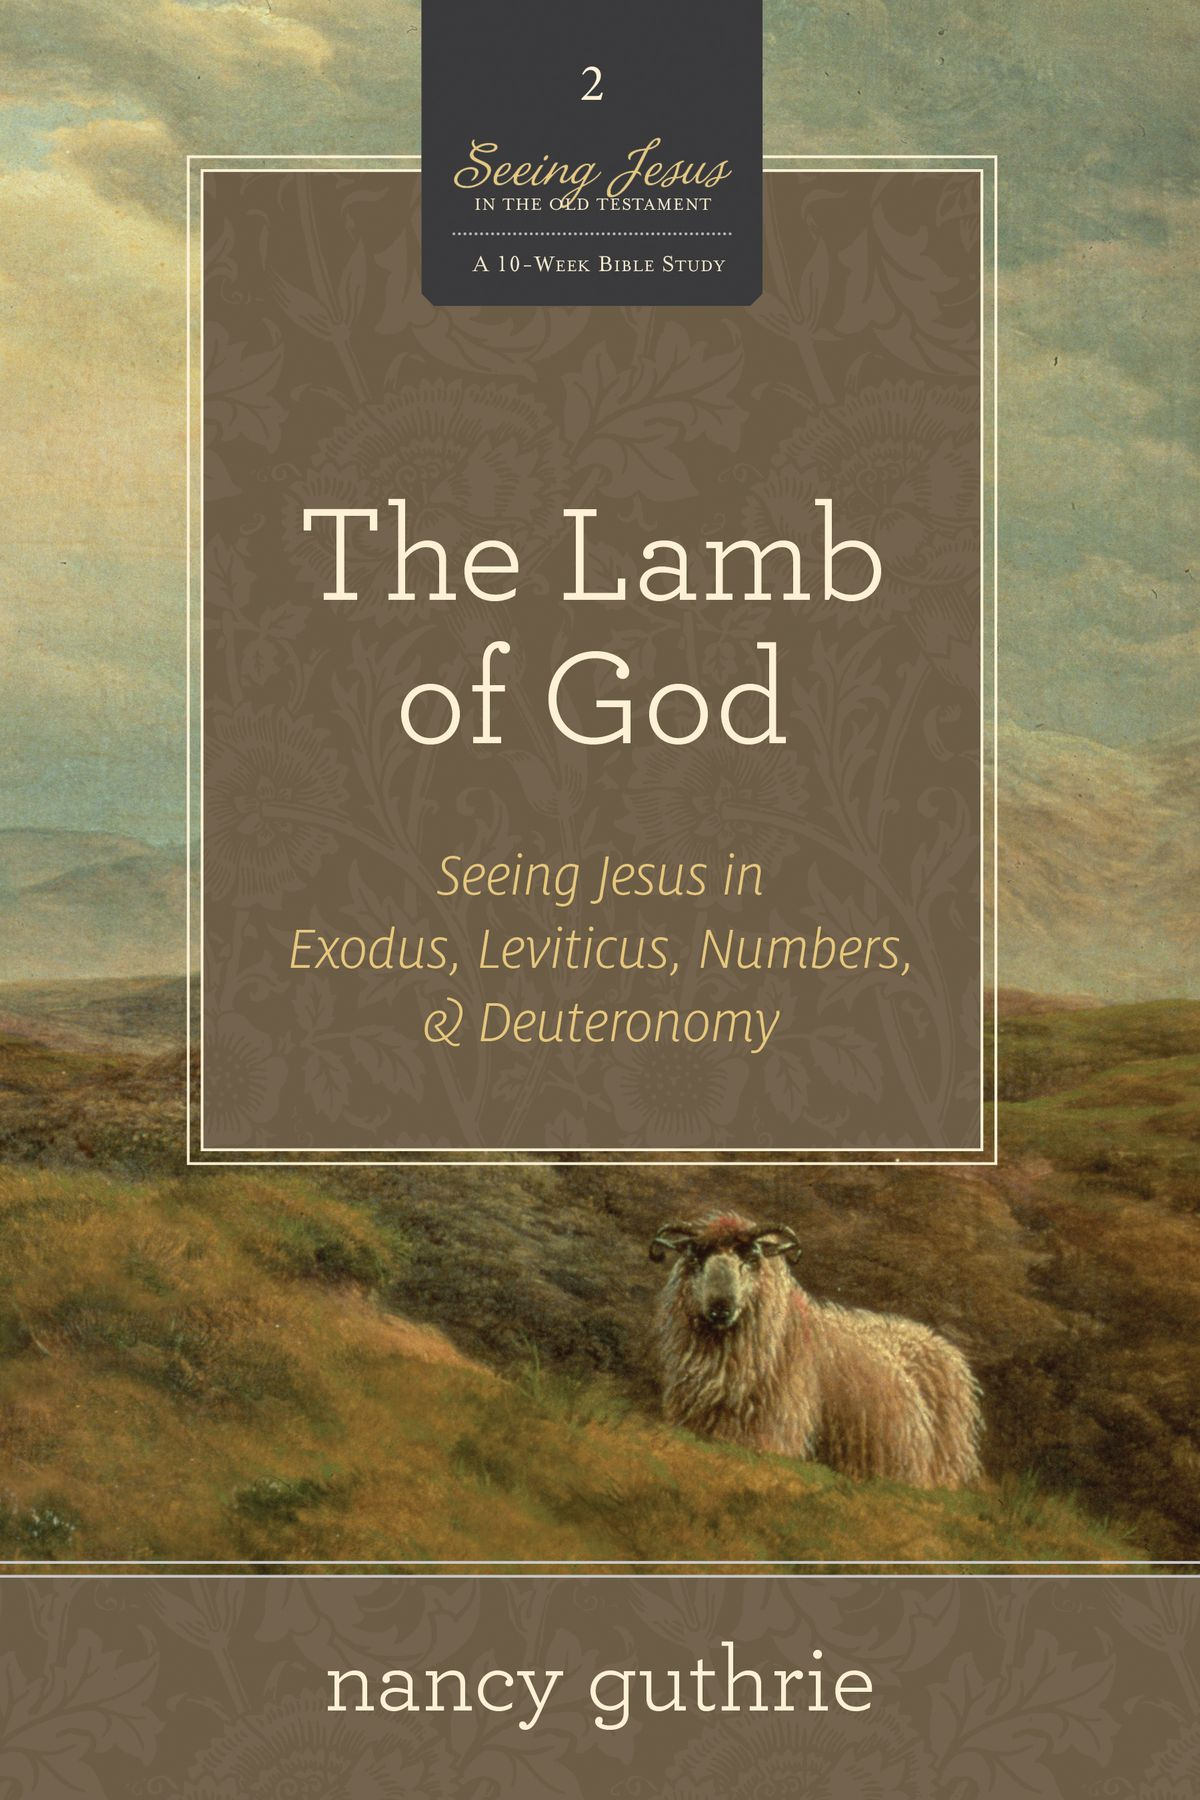 the-lamb-of-god-a-10-week-bible-study-seeing-jesus-in-exodus-leviticus-numbers-and-deuteronomy.jpg